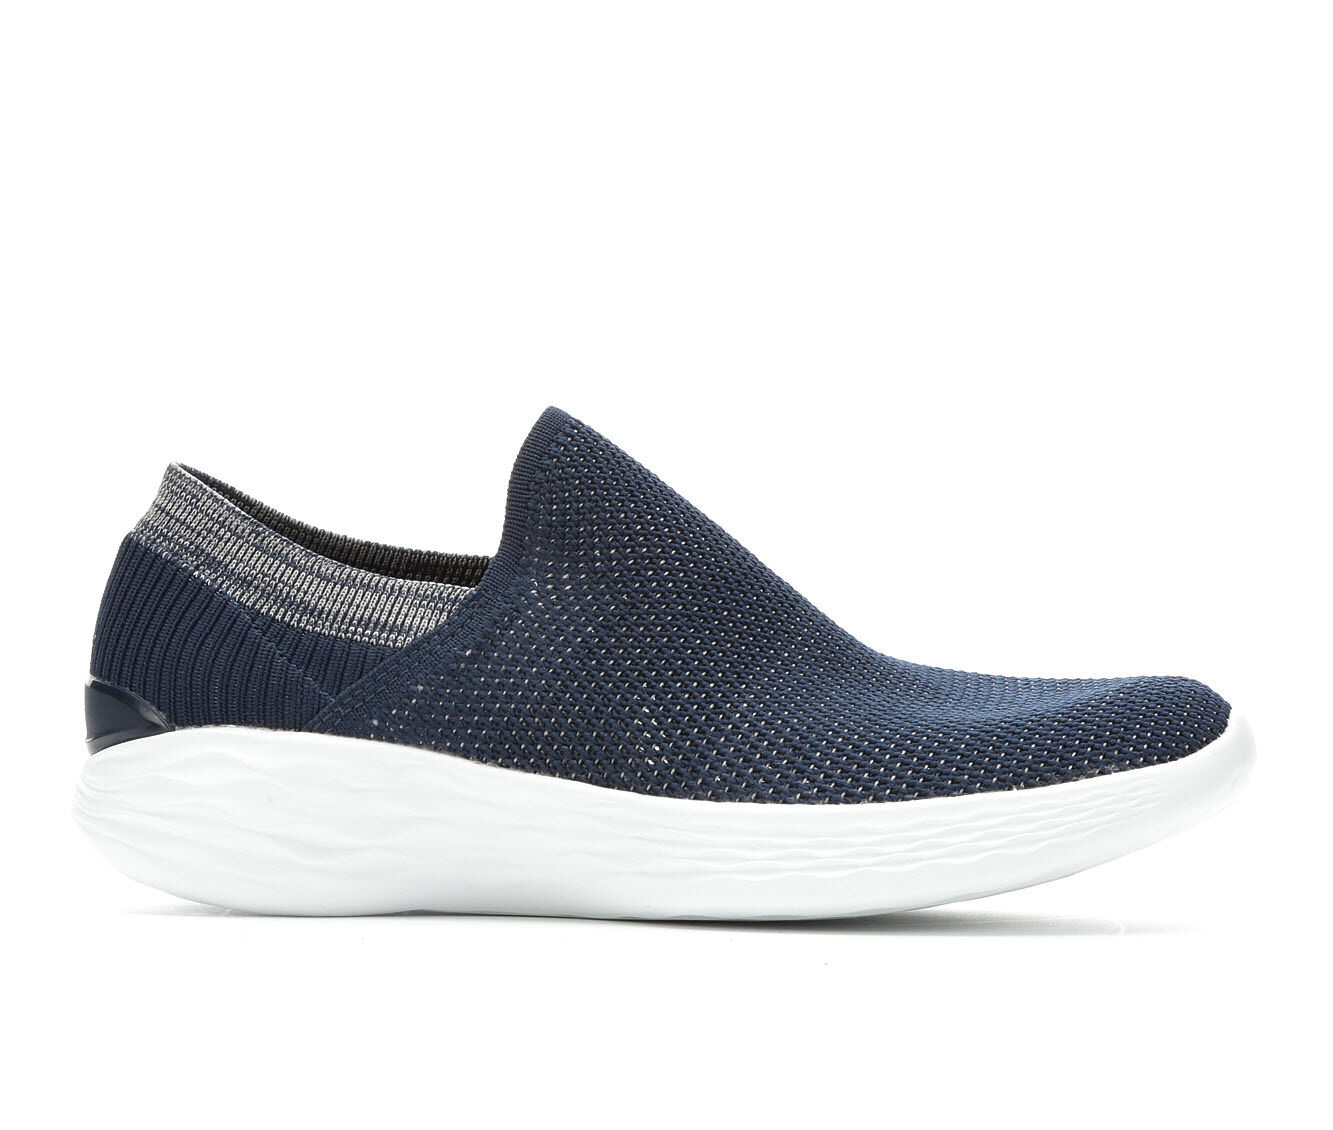 cheap view sale cost Women's Skechers Go You BCA 15013 Slip-On Sneakers visa payment cheap online 8Q2GNLO